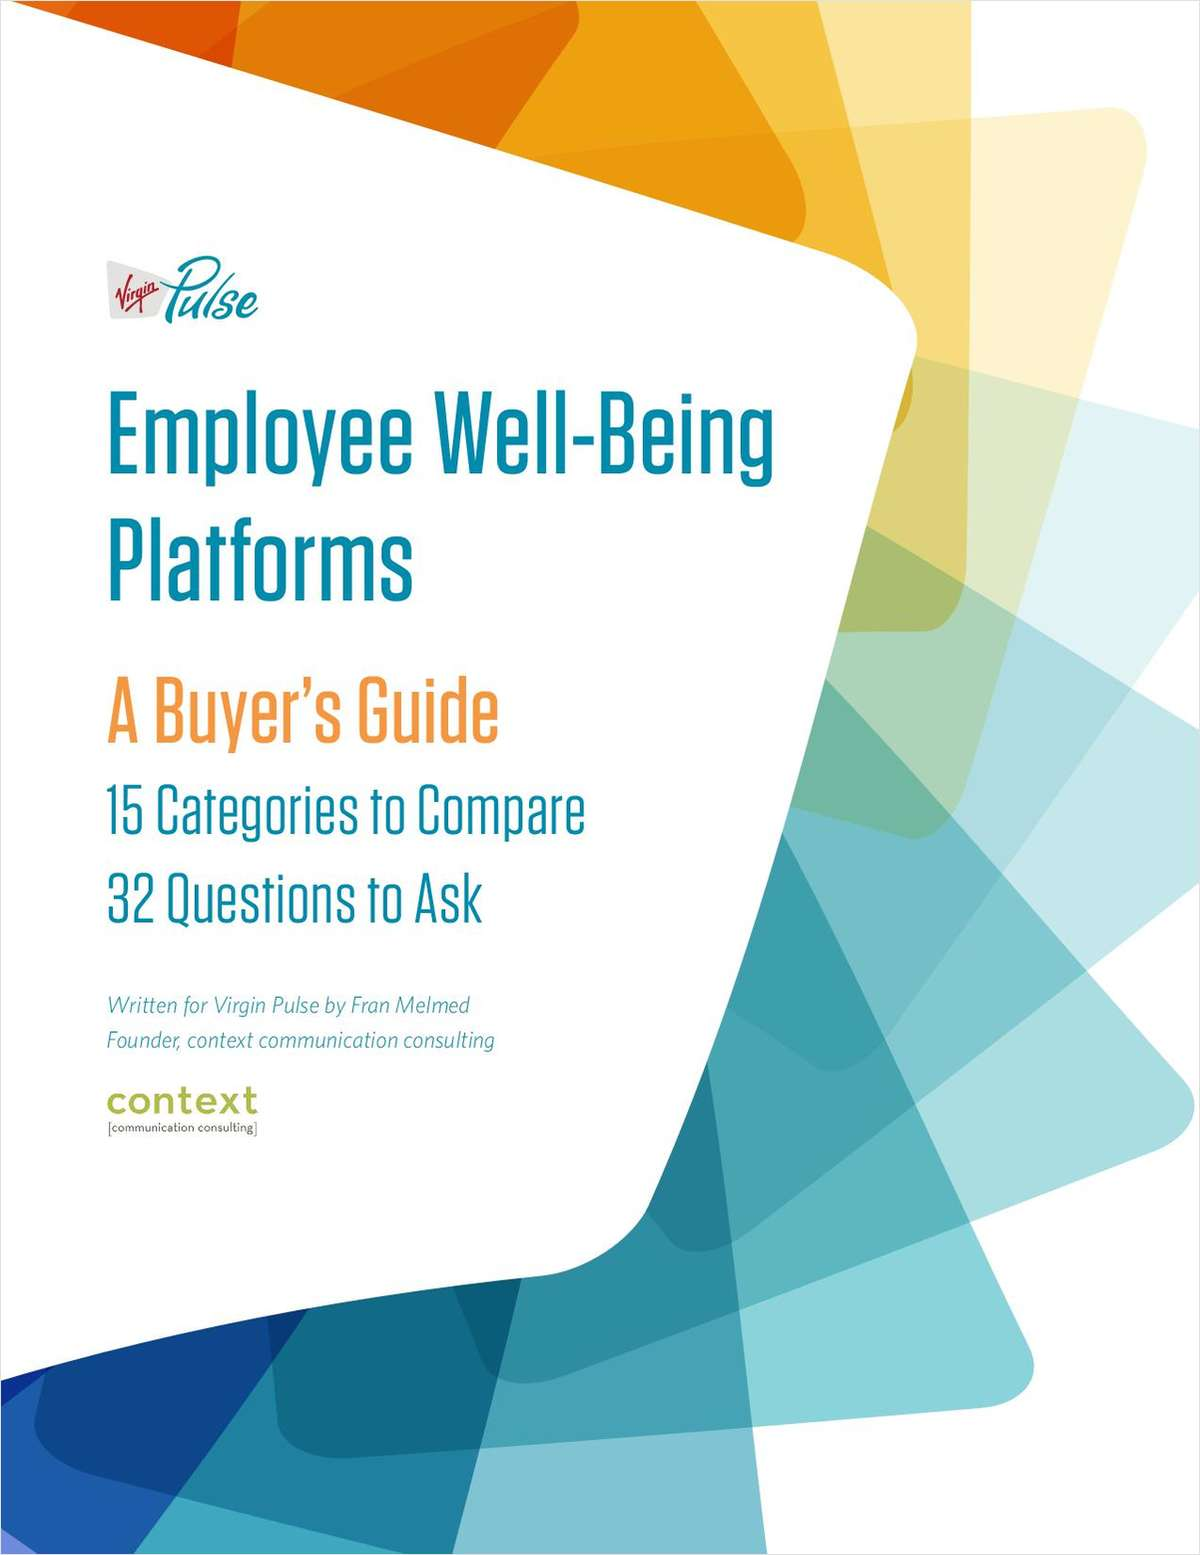 Employee Well-Being Platforms